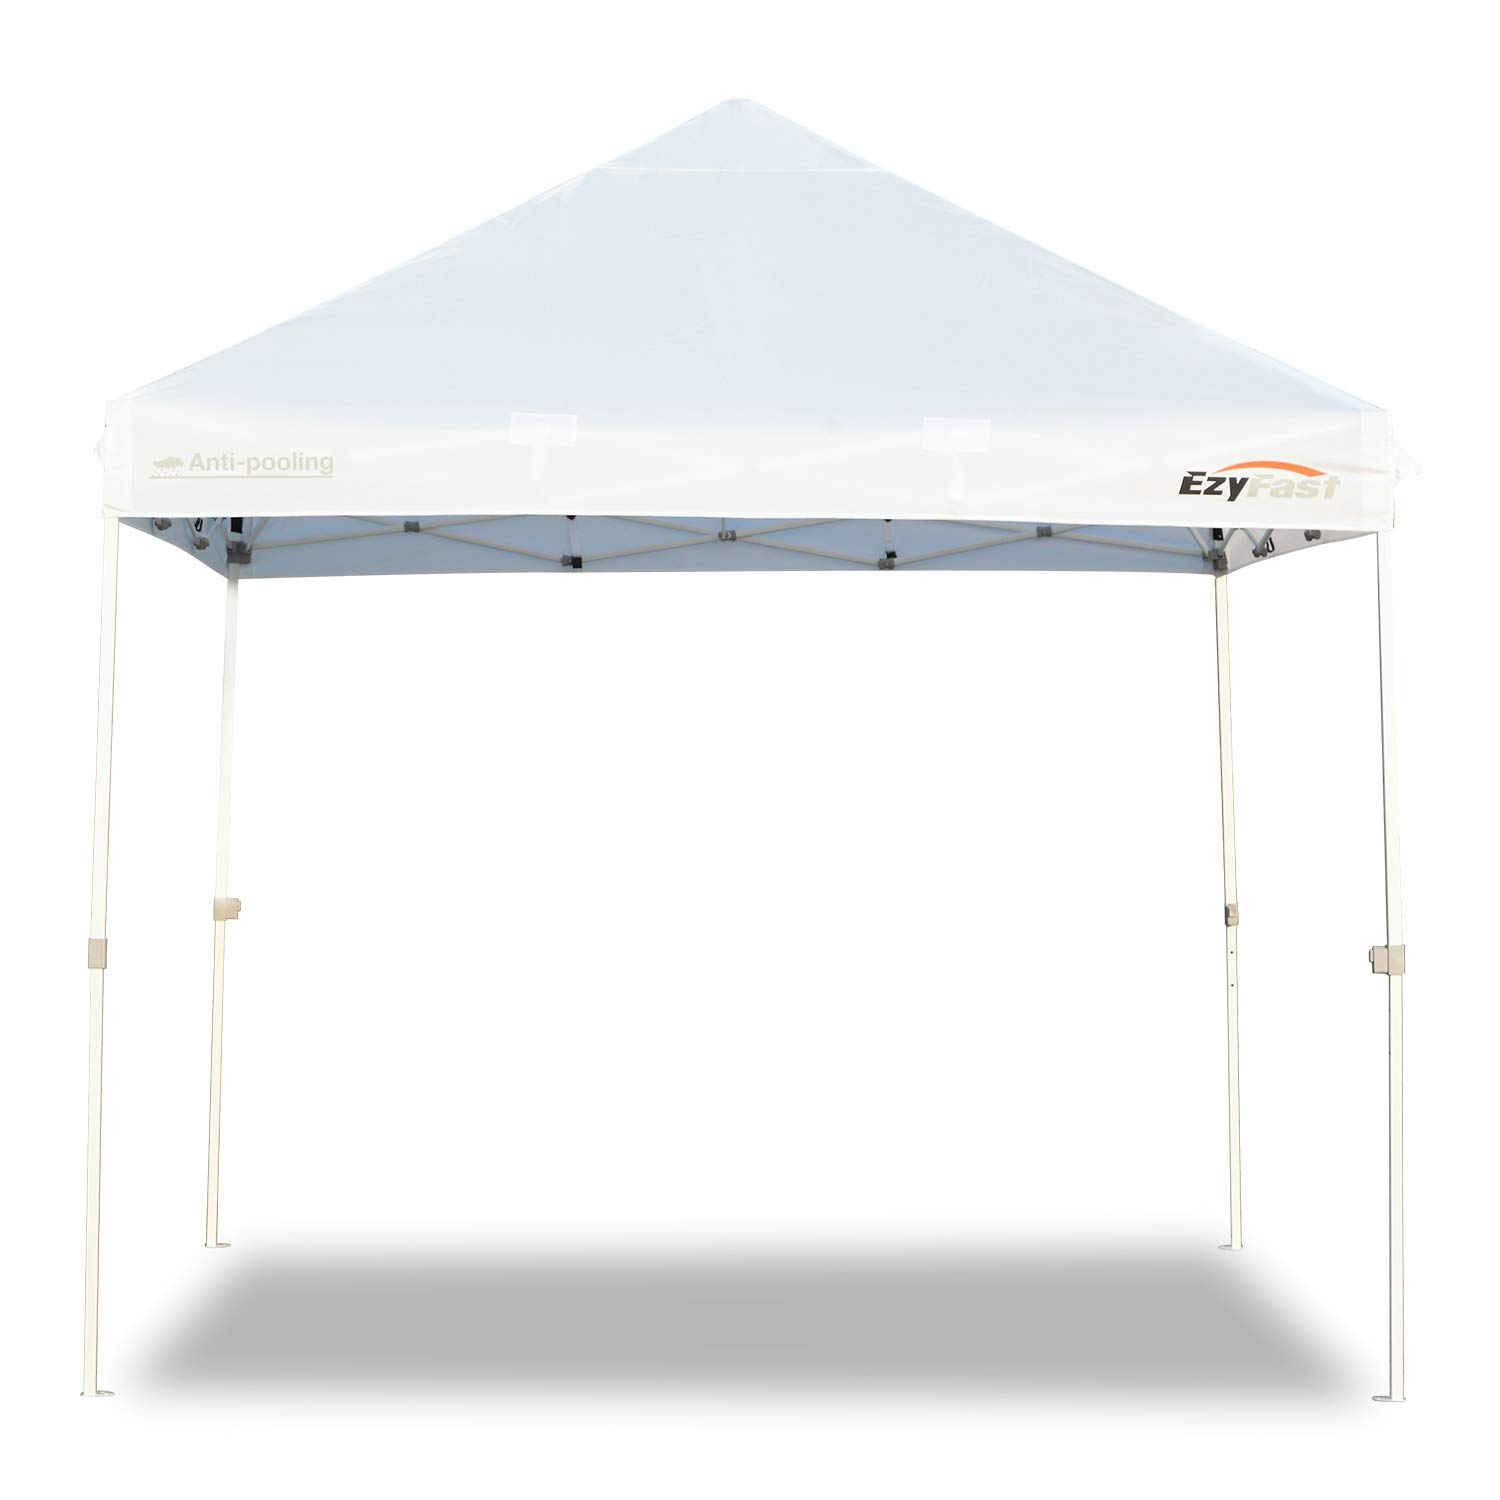 EzyFast Antipool Pro Commercial Canopy for Rain or Sunshine, White Heavy Duty 10×10 Pop Up Canopy, Portable Patented Instant Shade Tent with Wheeled Carry Bag